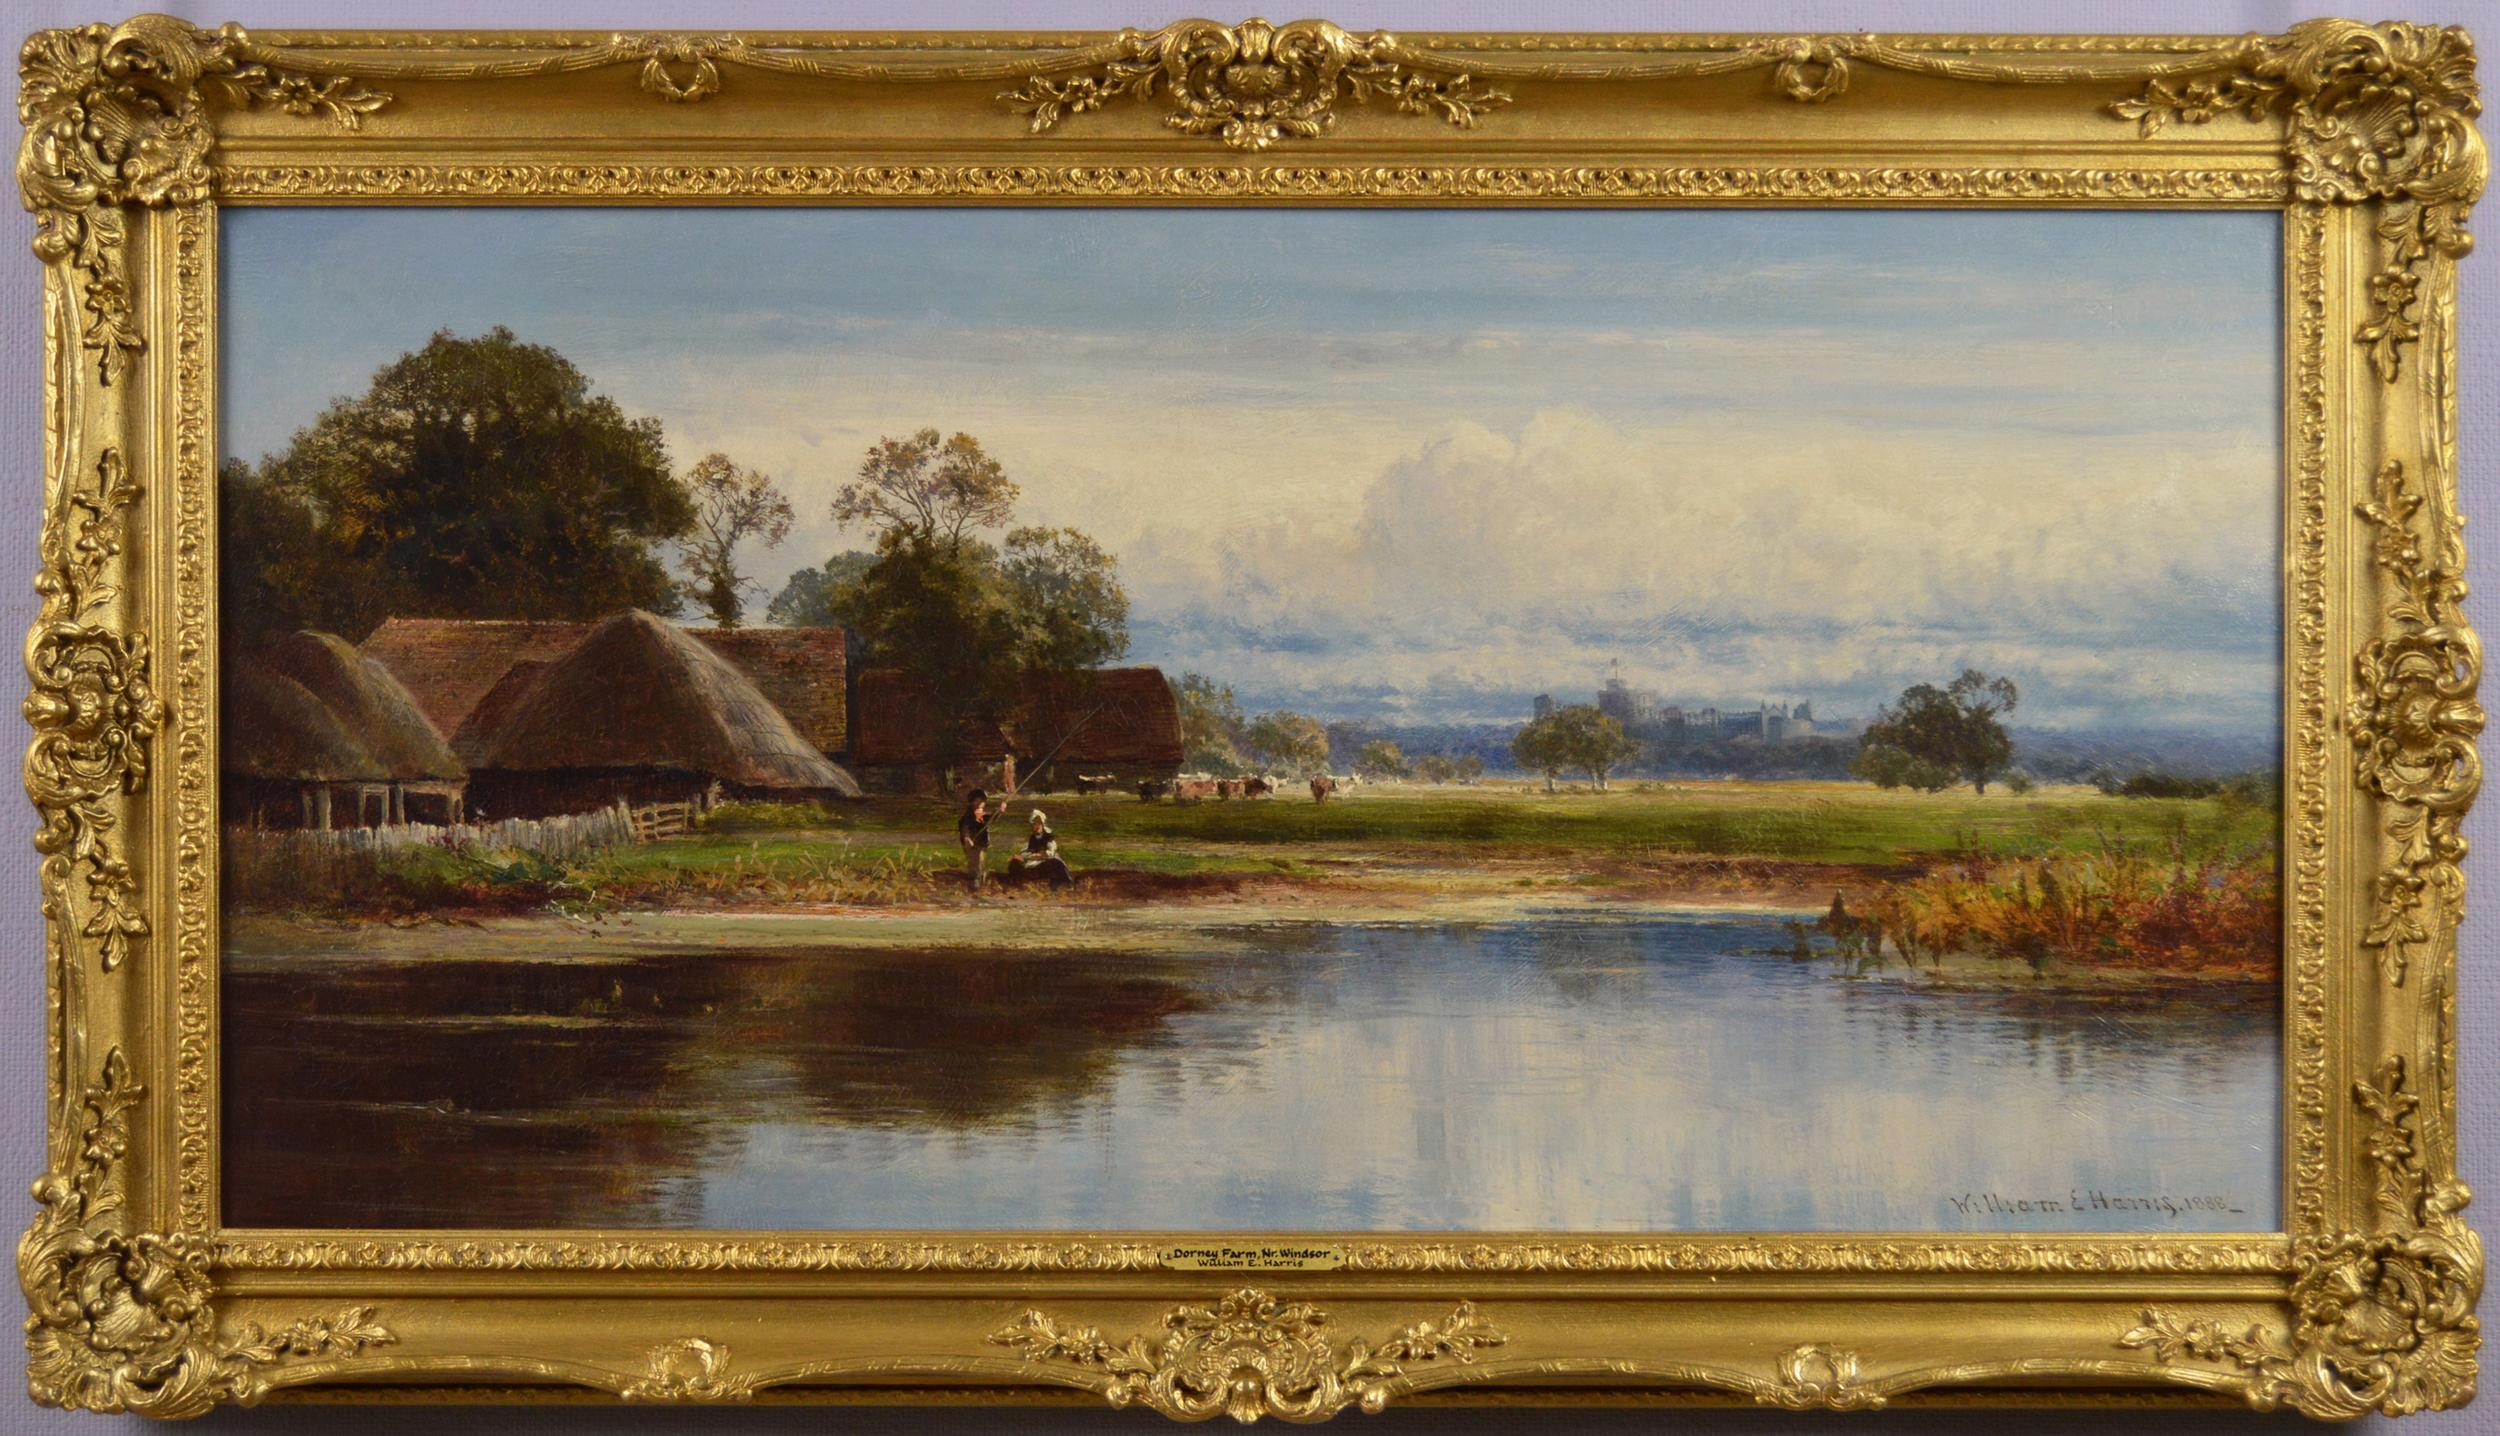 19th century landscape oil painting of a farm with Windsor Castle beyond